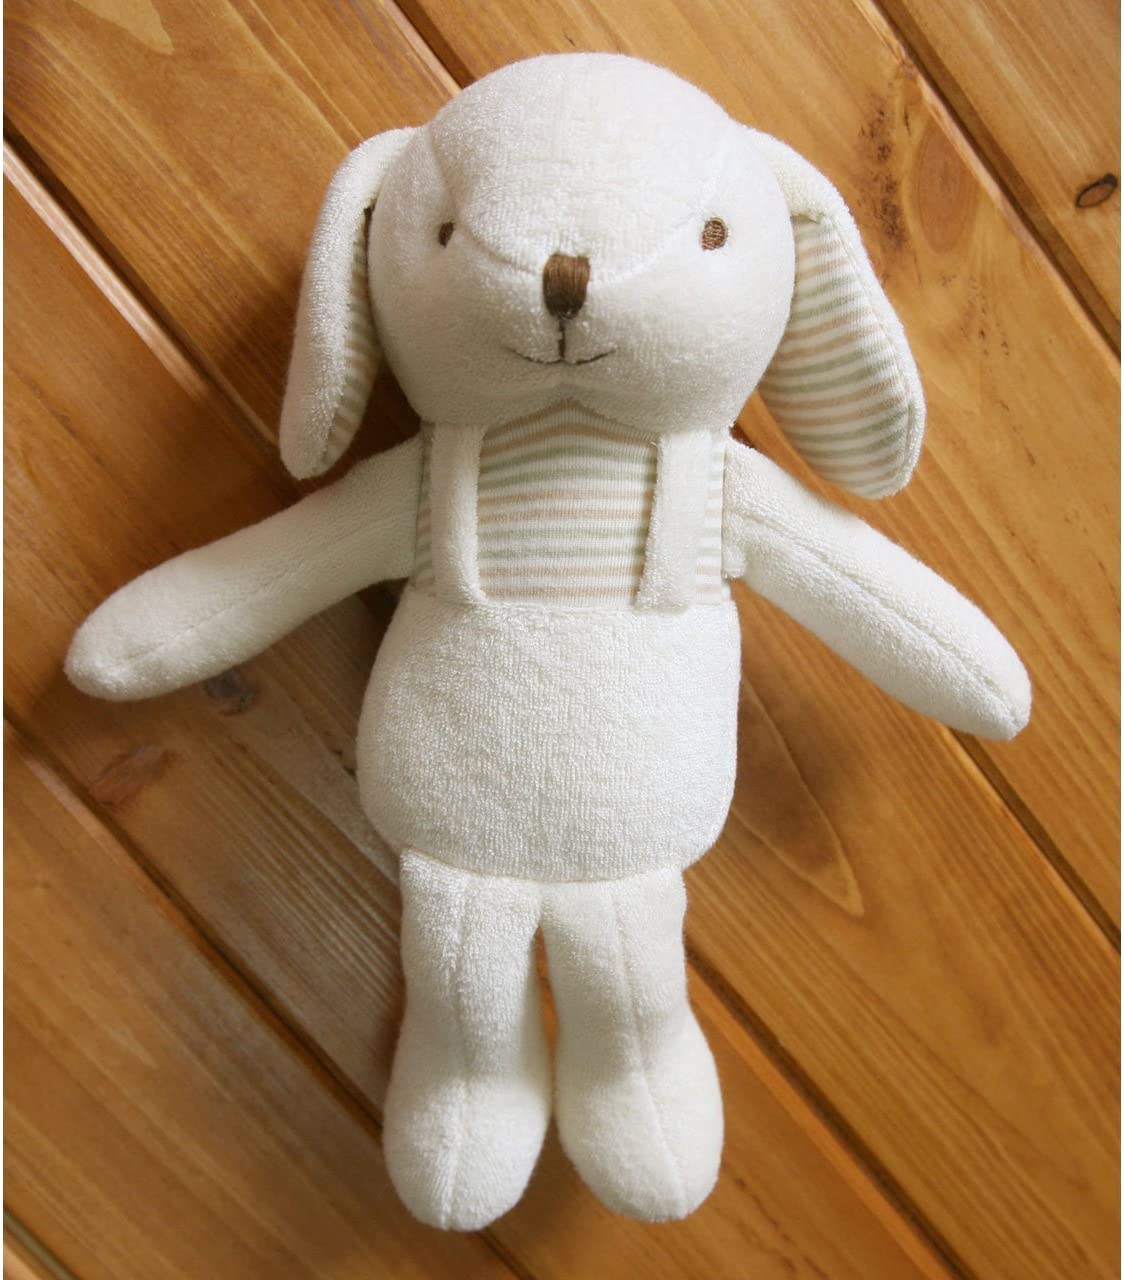 ... Organic Cotton Baby First Doll Lovely Lace Rabbit 11 inches No Dyeing Natural Organic Cotton